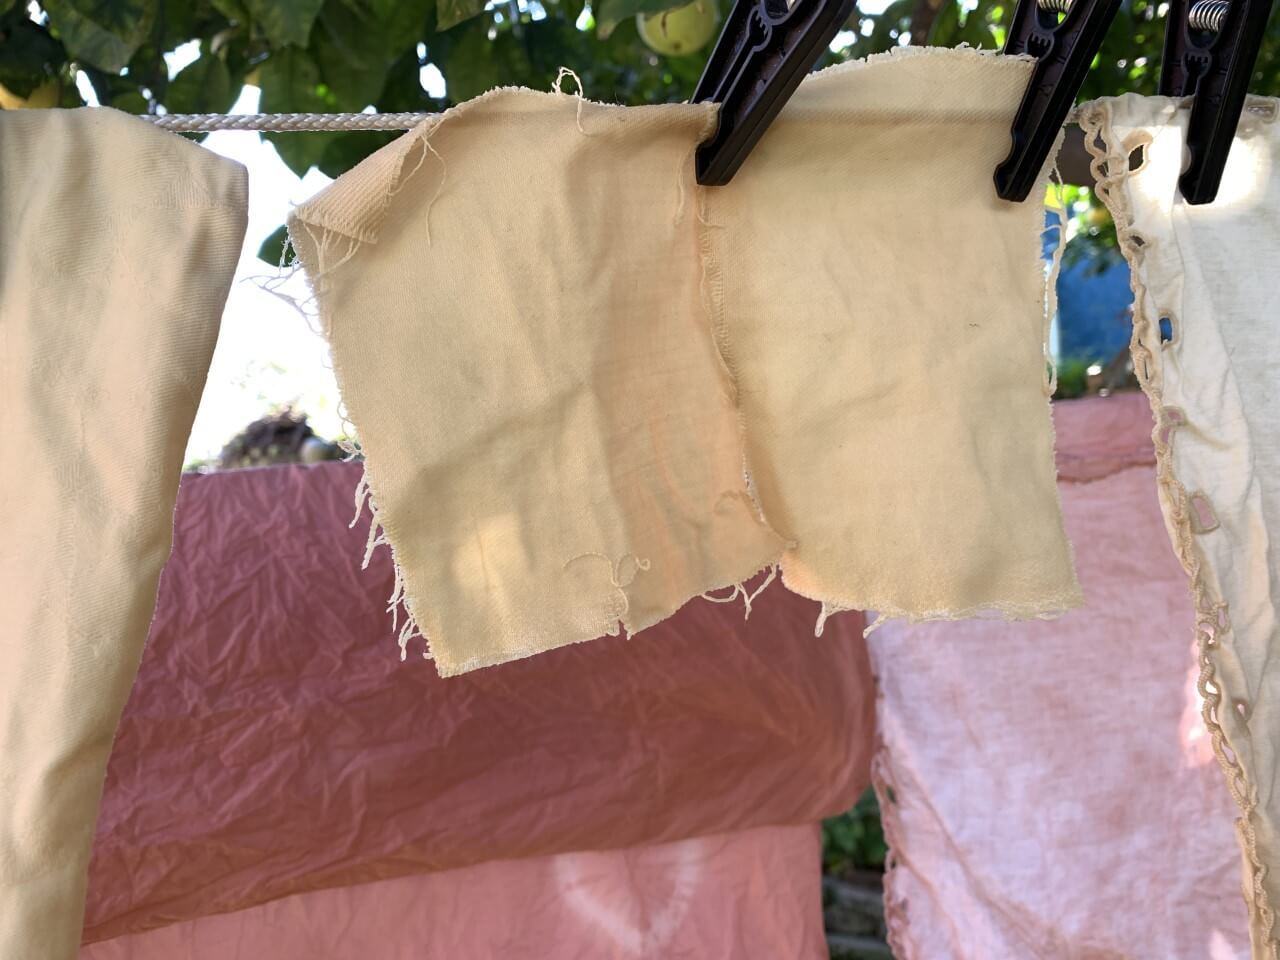 Scraps of fabric hanging from a clothesline.